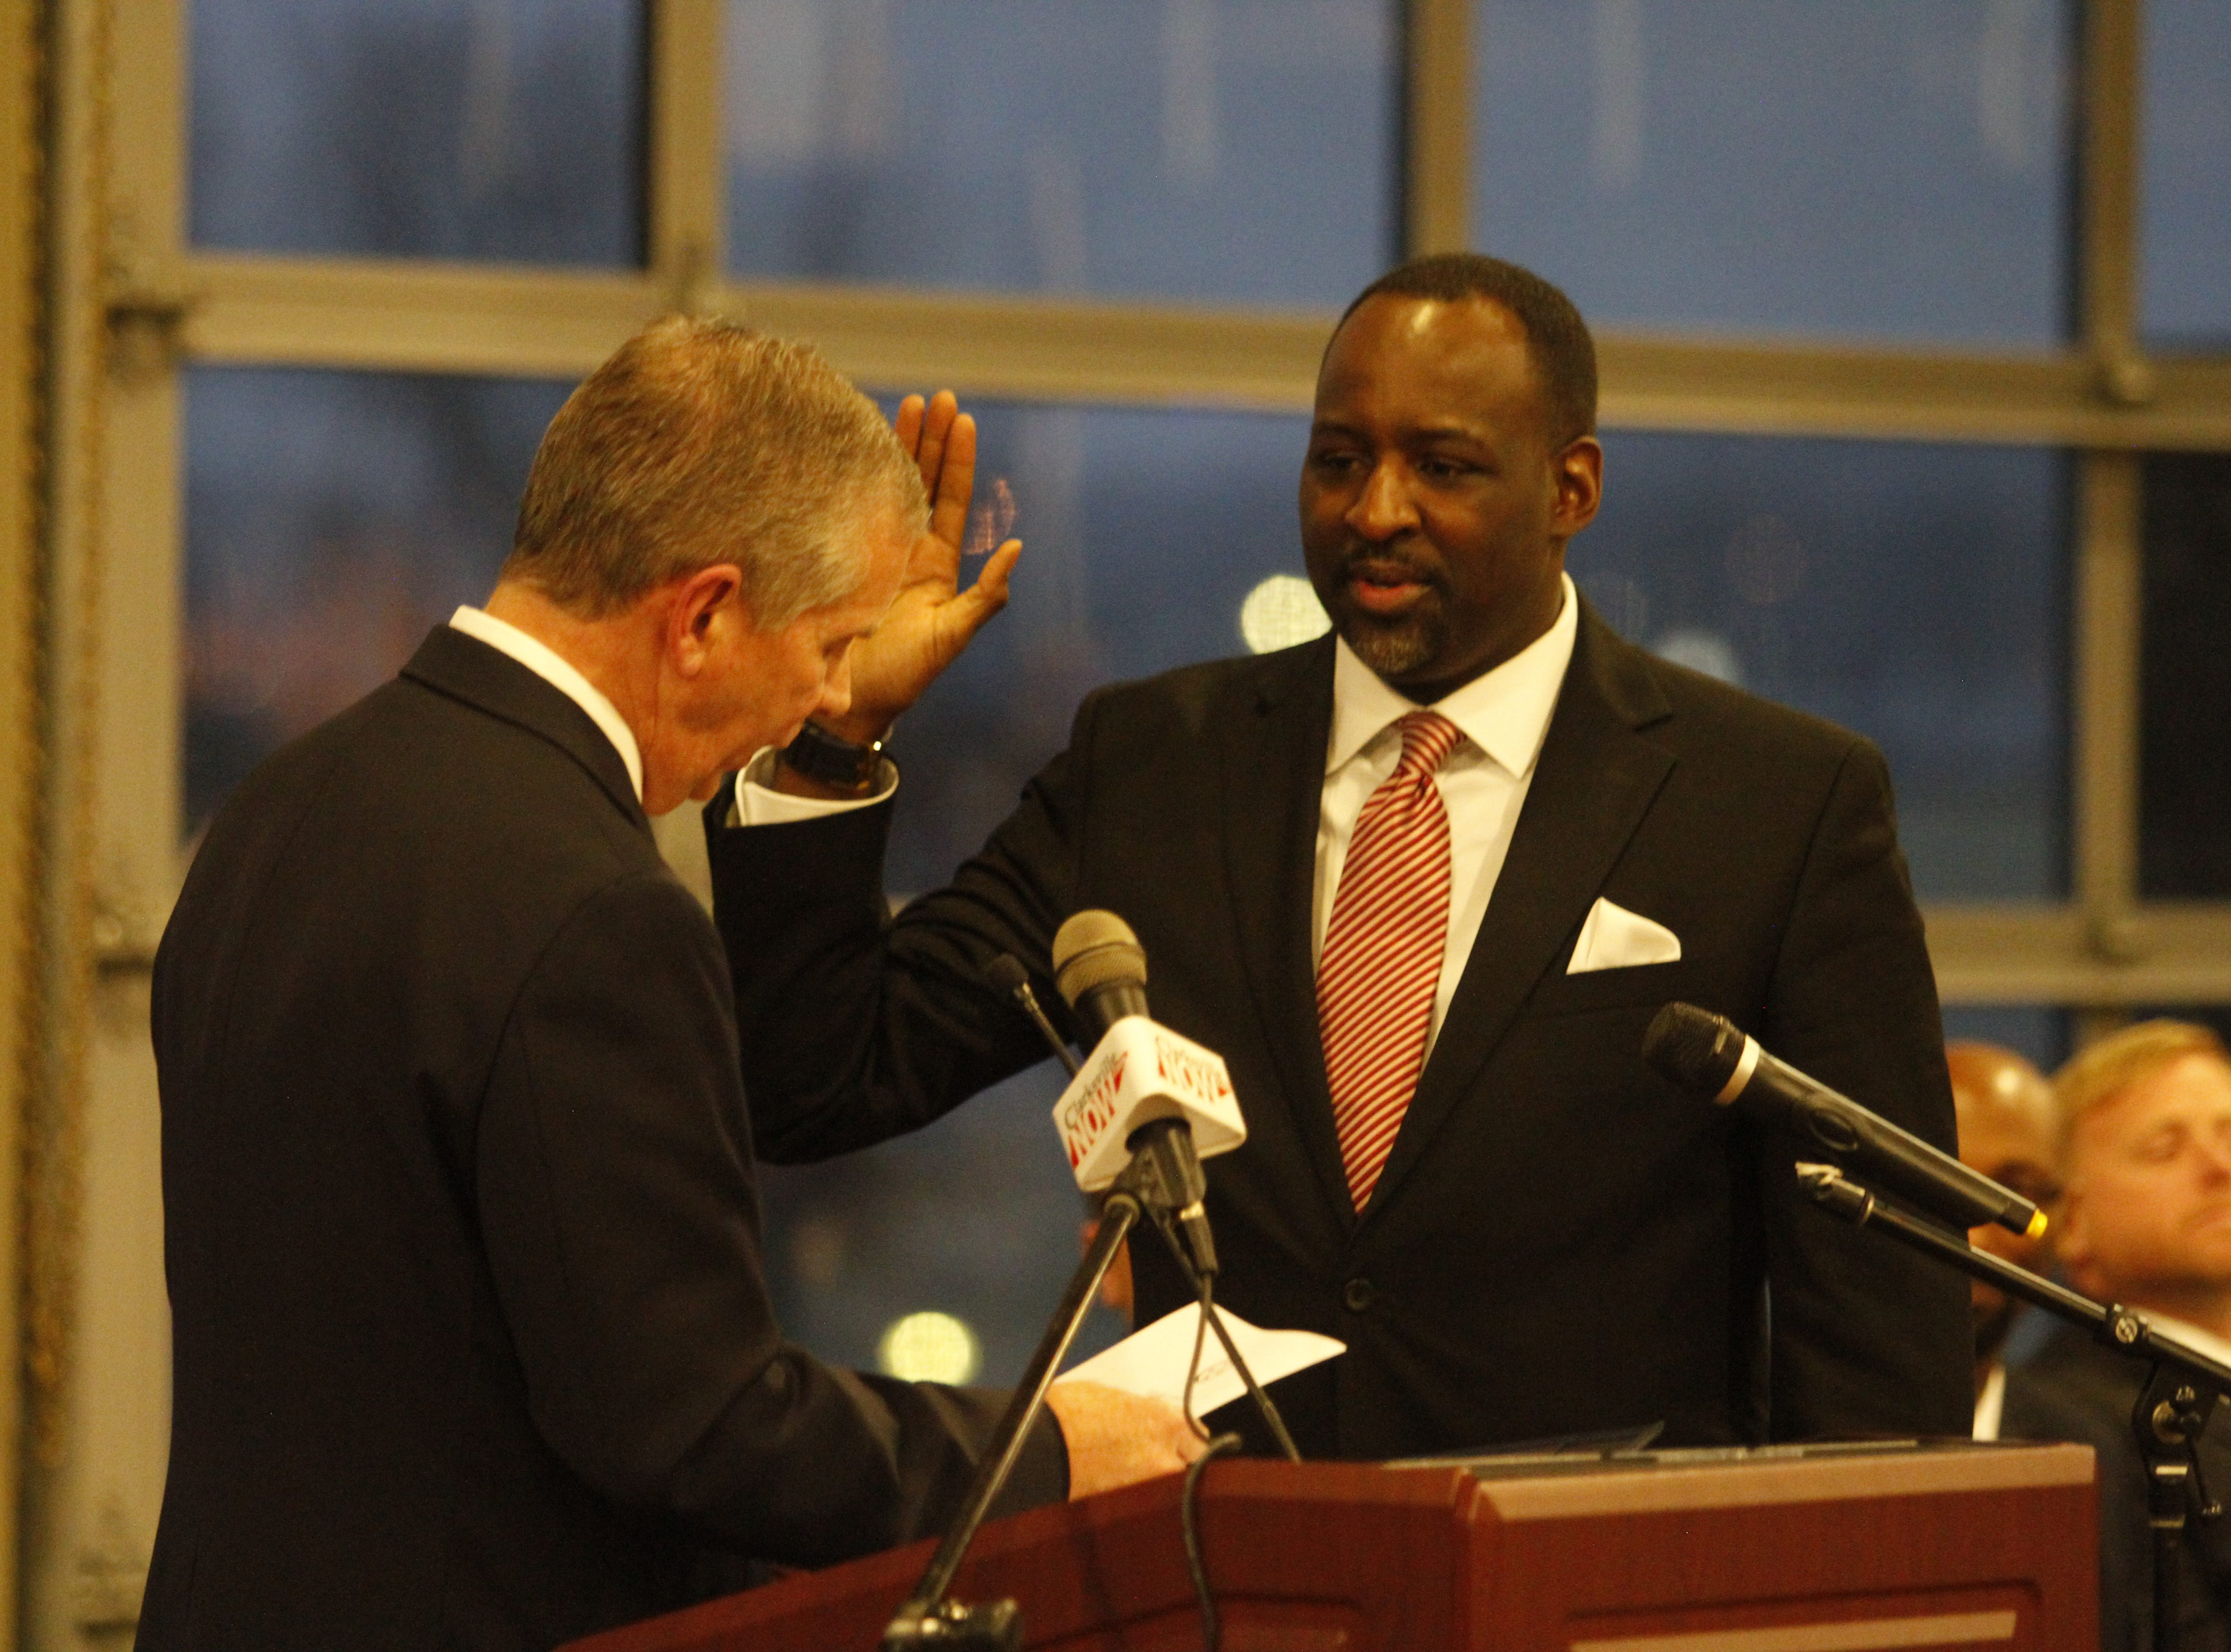 Mayor Joe Pitts swears in Ward 2 City Councilman Vondell Richmond on Wednesday, Jan. 2, 2019, at the Wilma Rudolph Event Center.